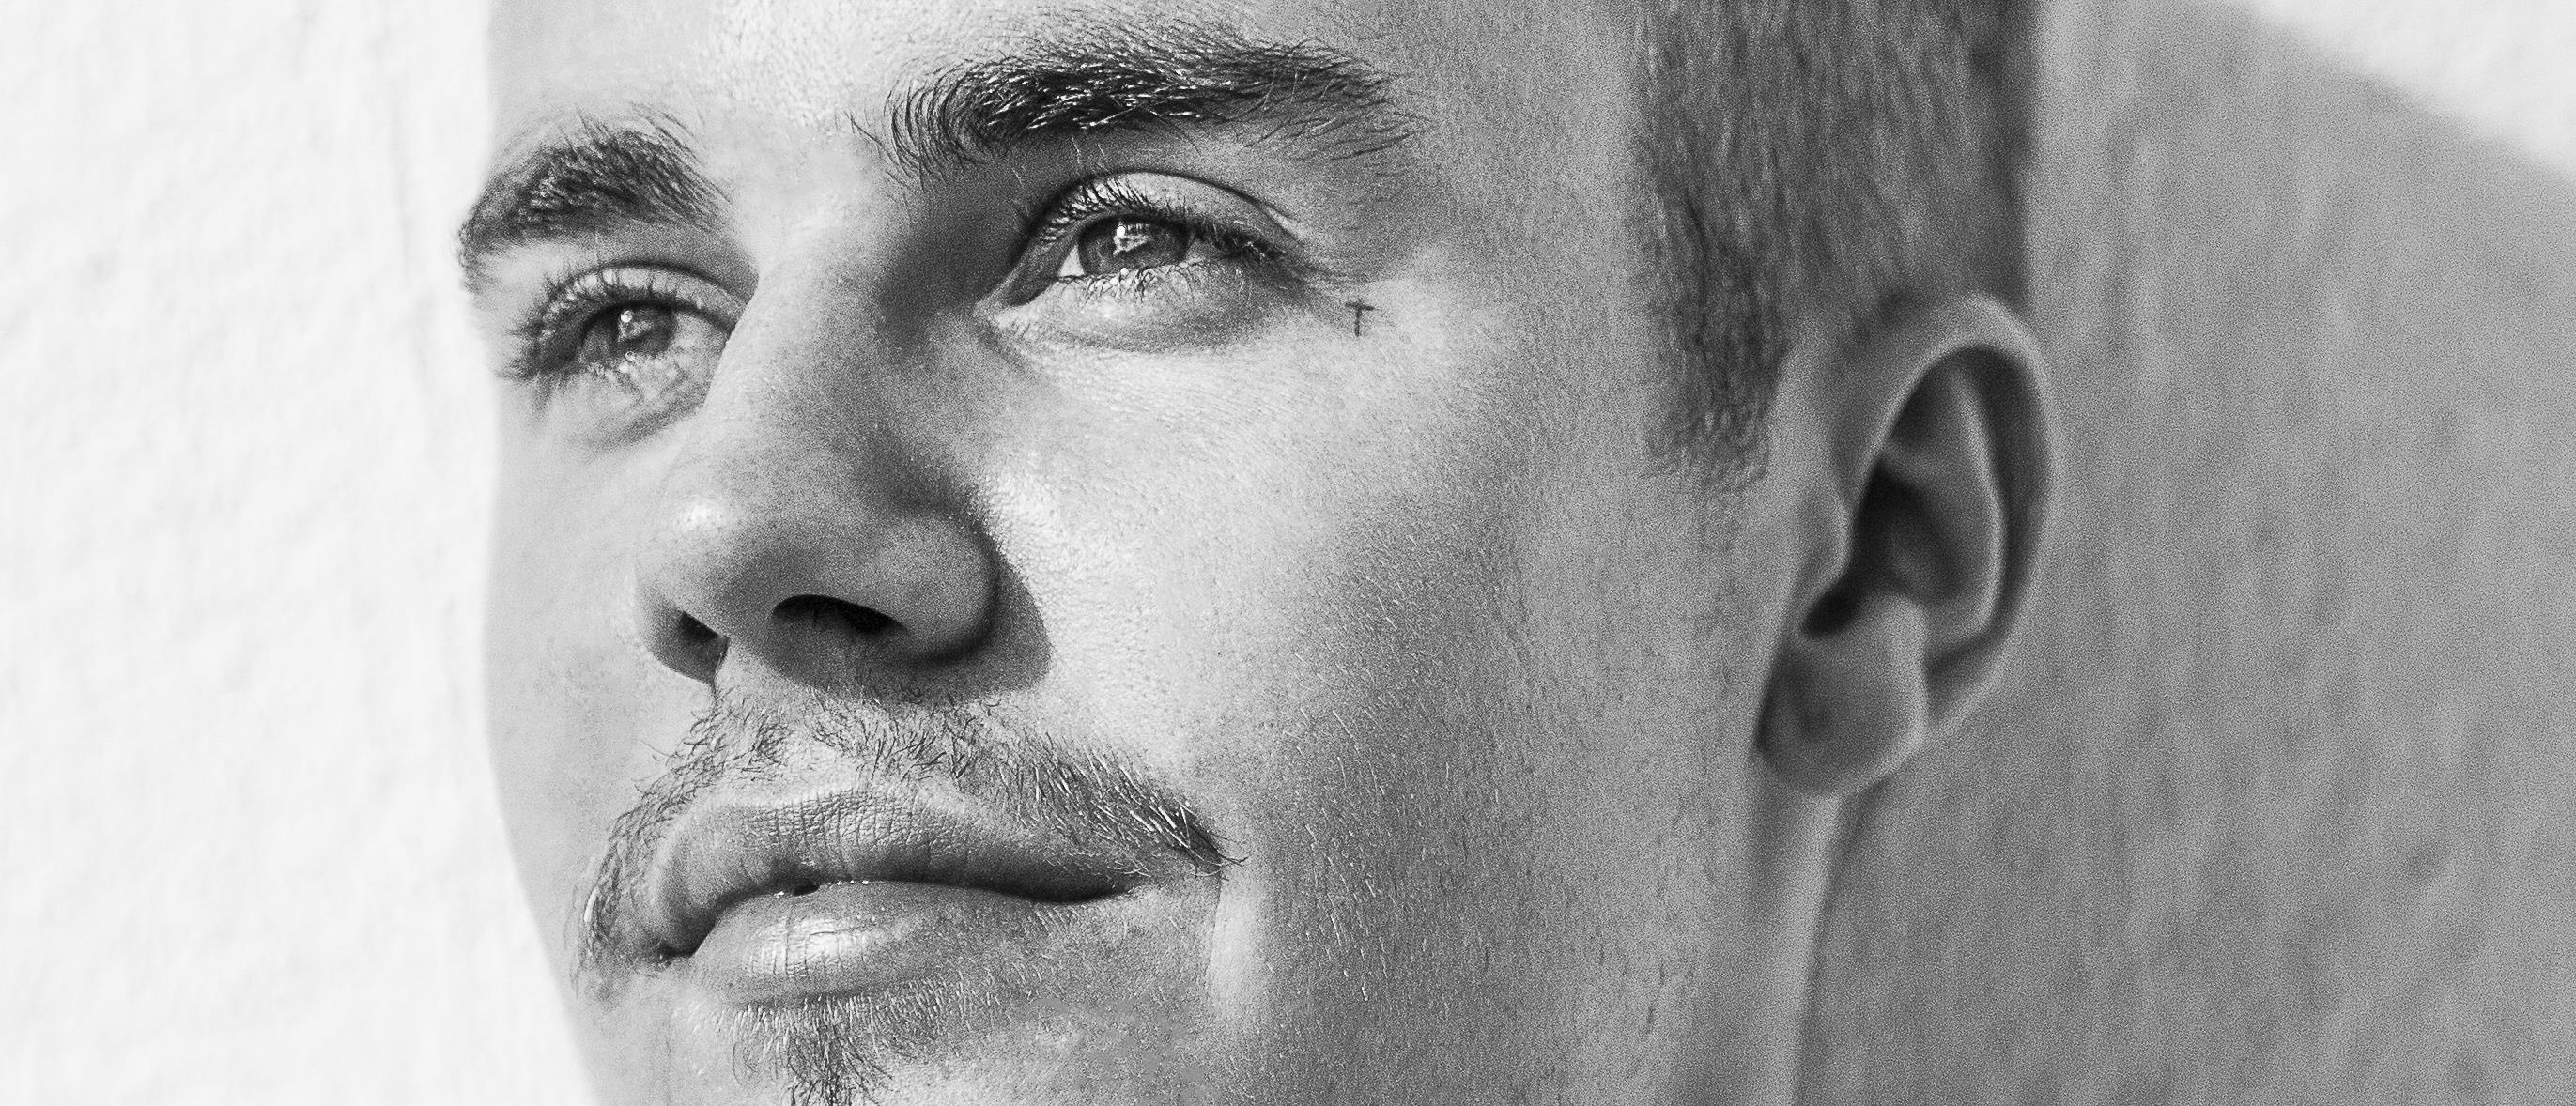 download justin bieber song all around the world